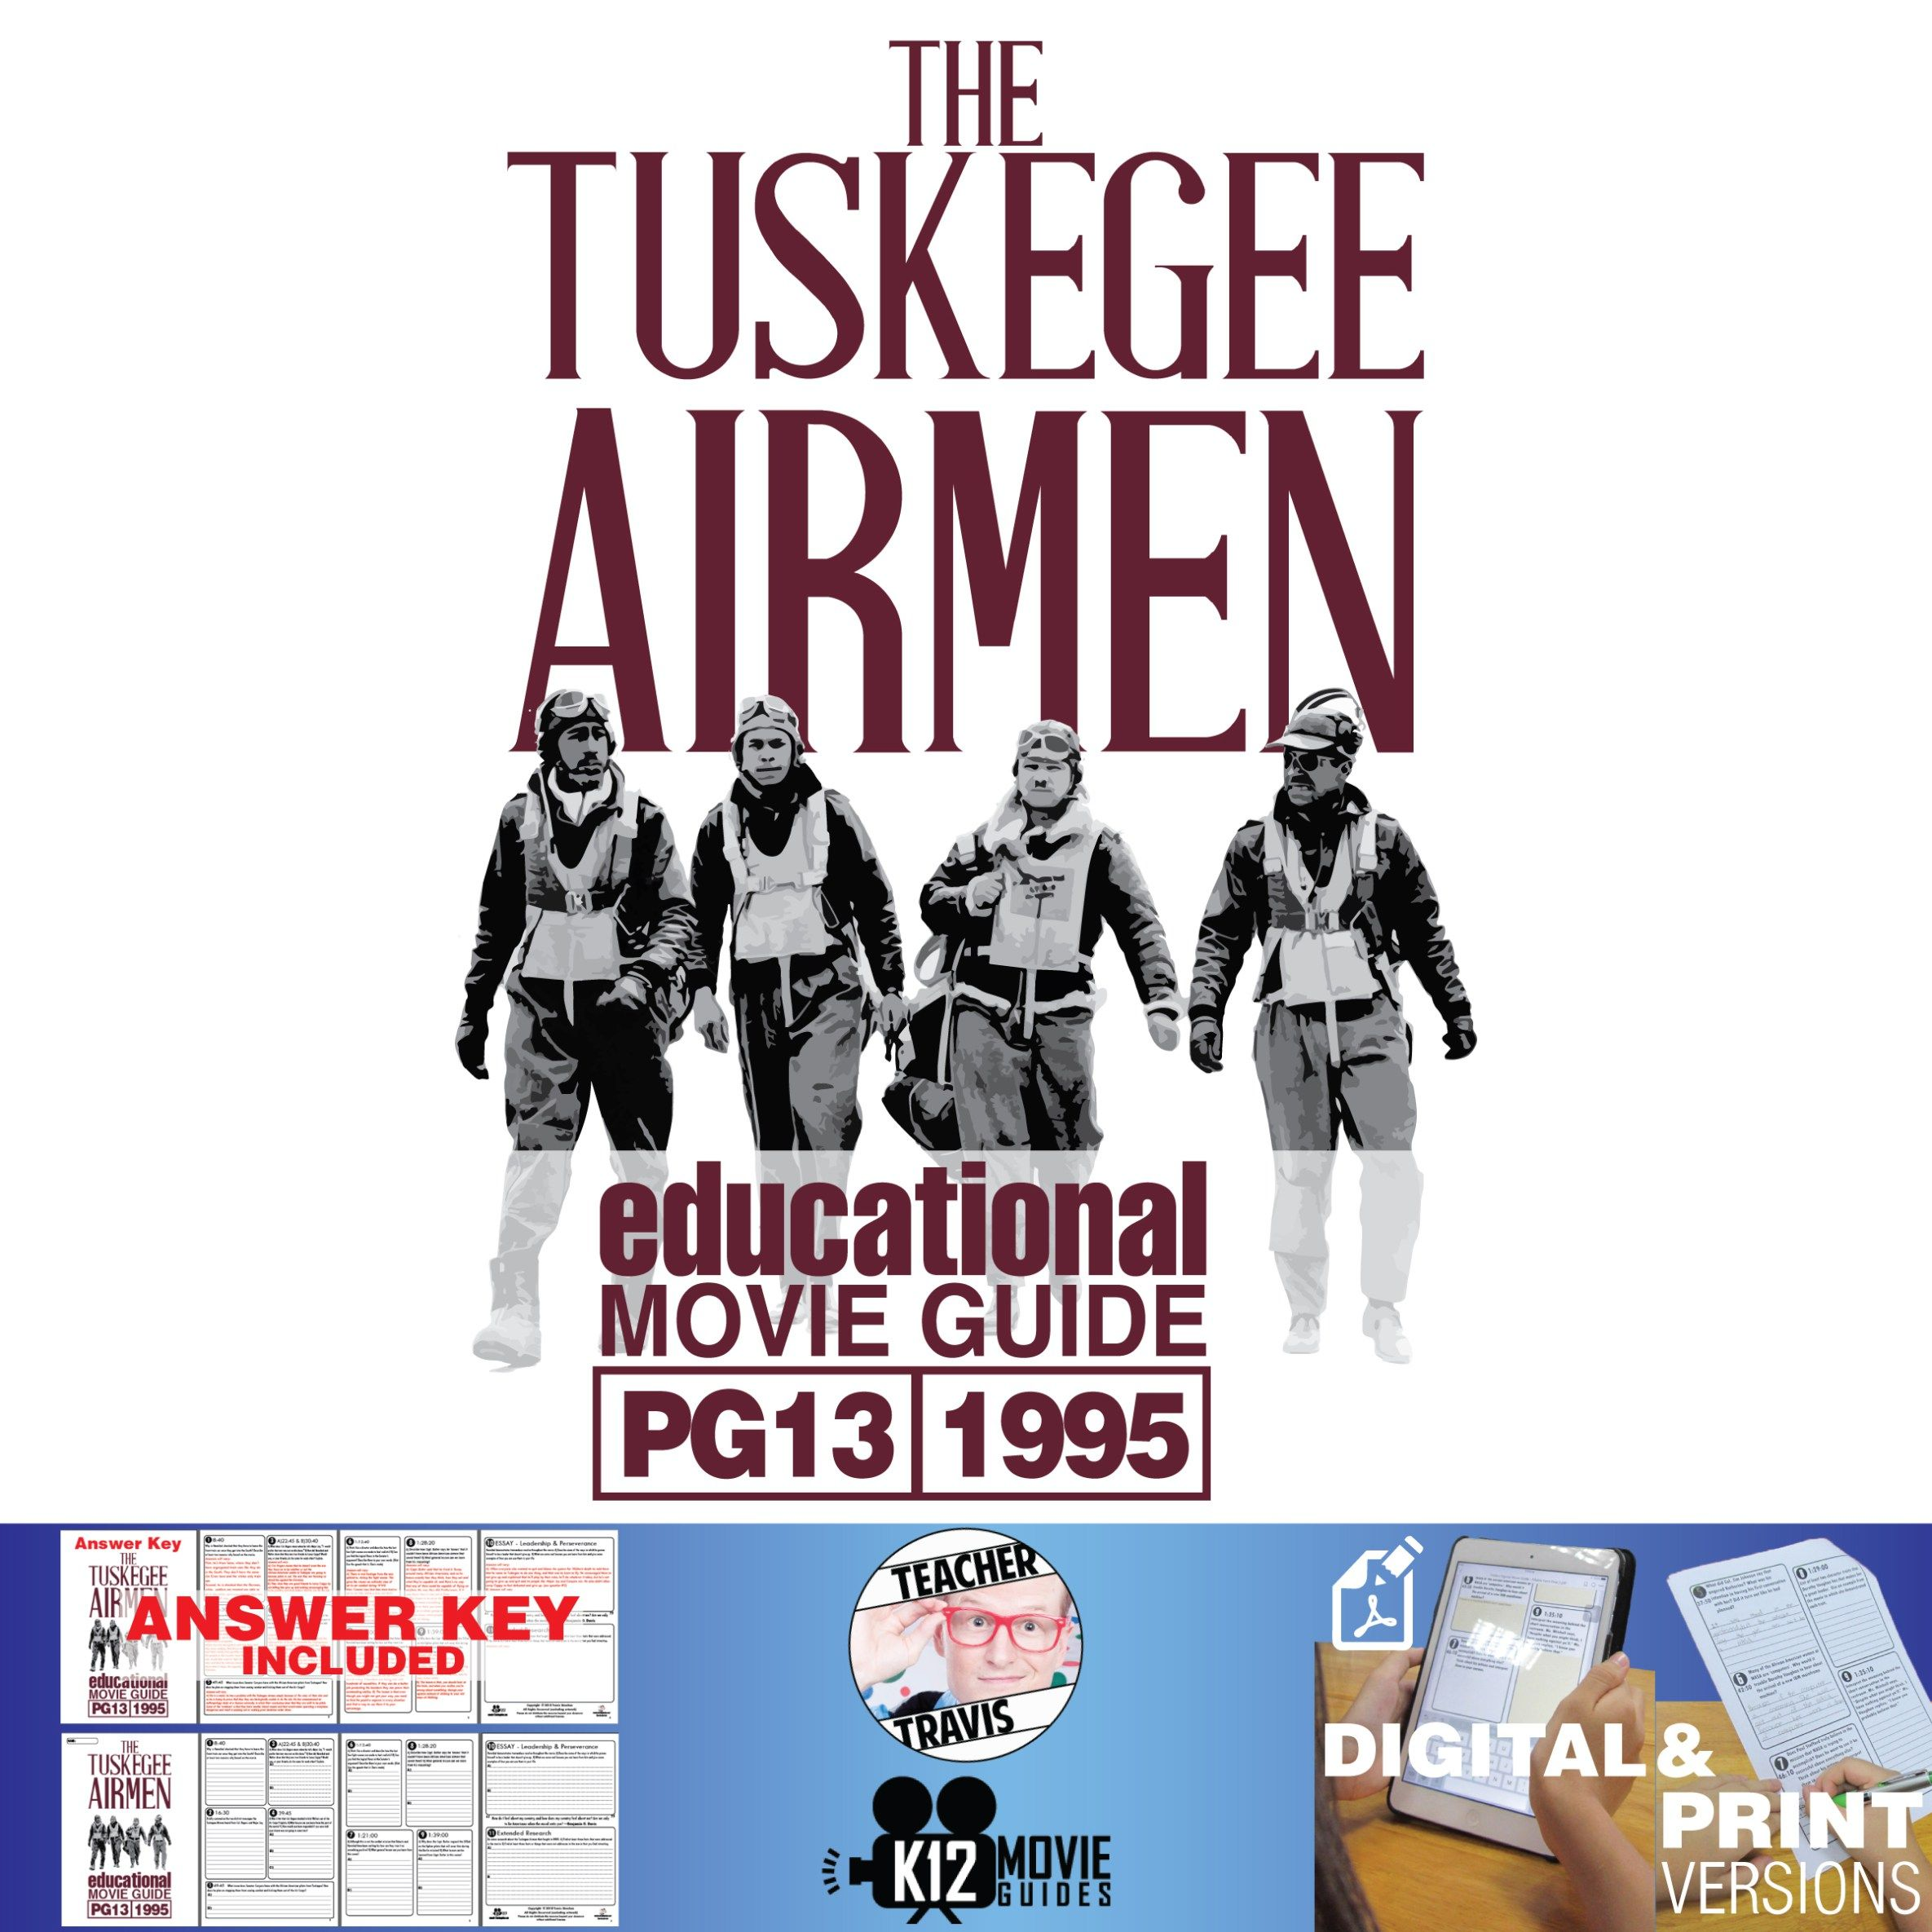 The Tuskegee Airmen Movie Guide